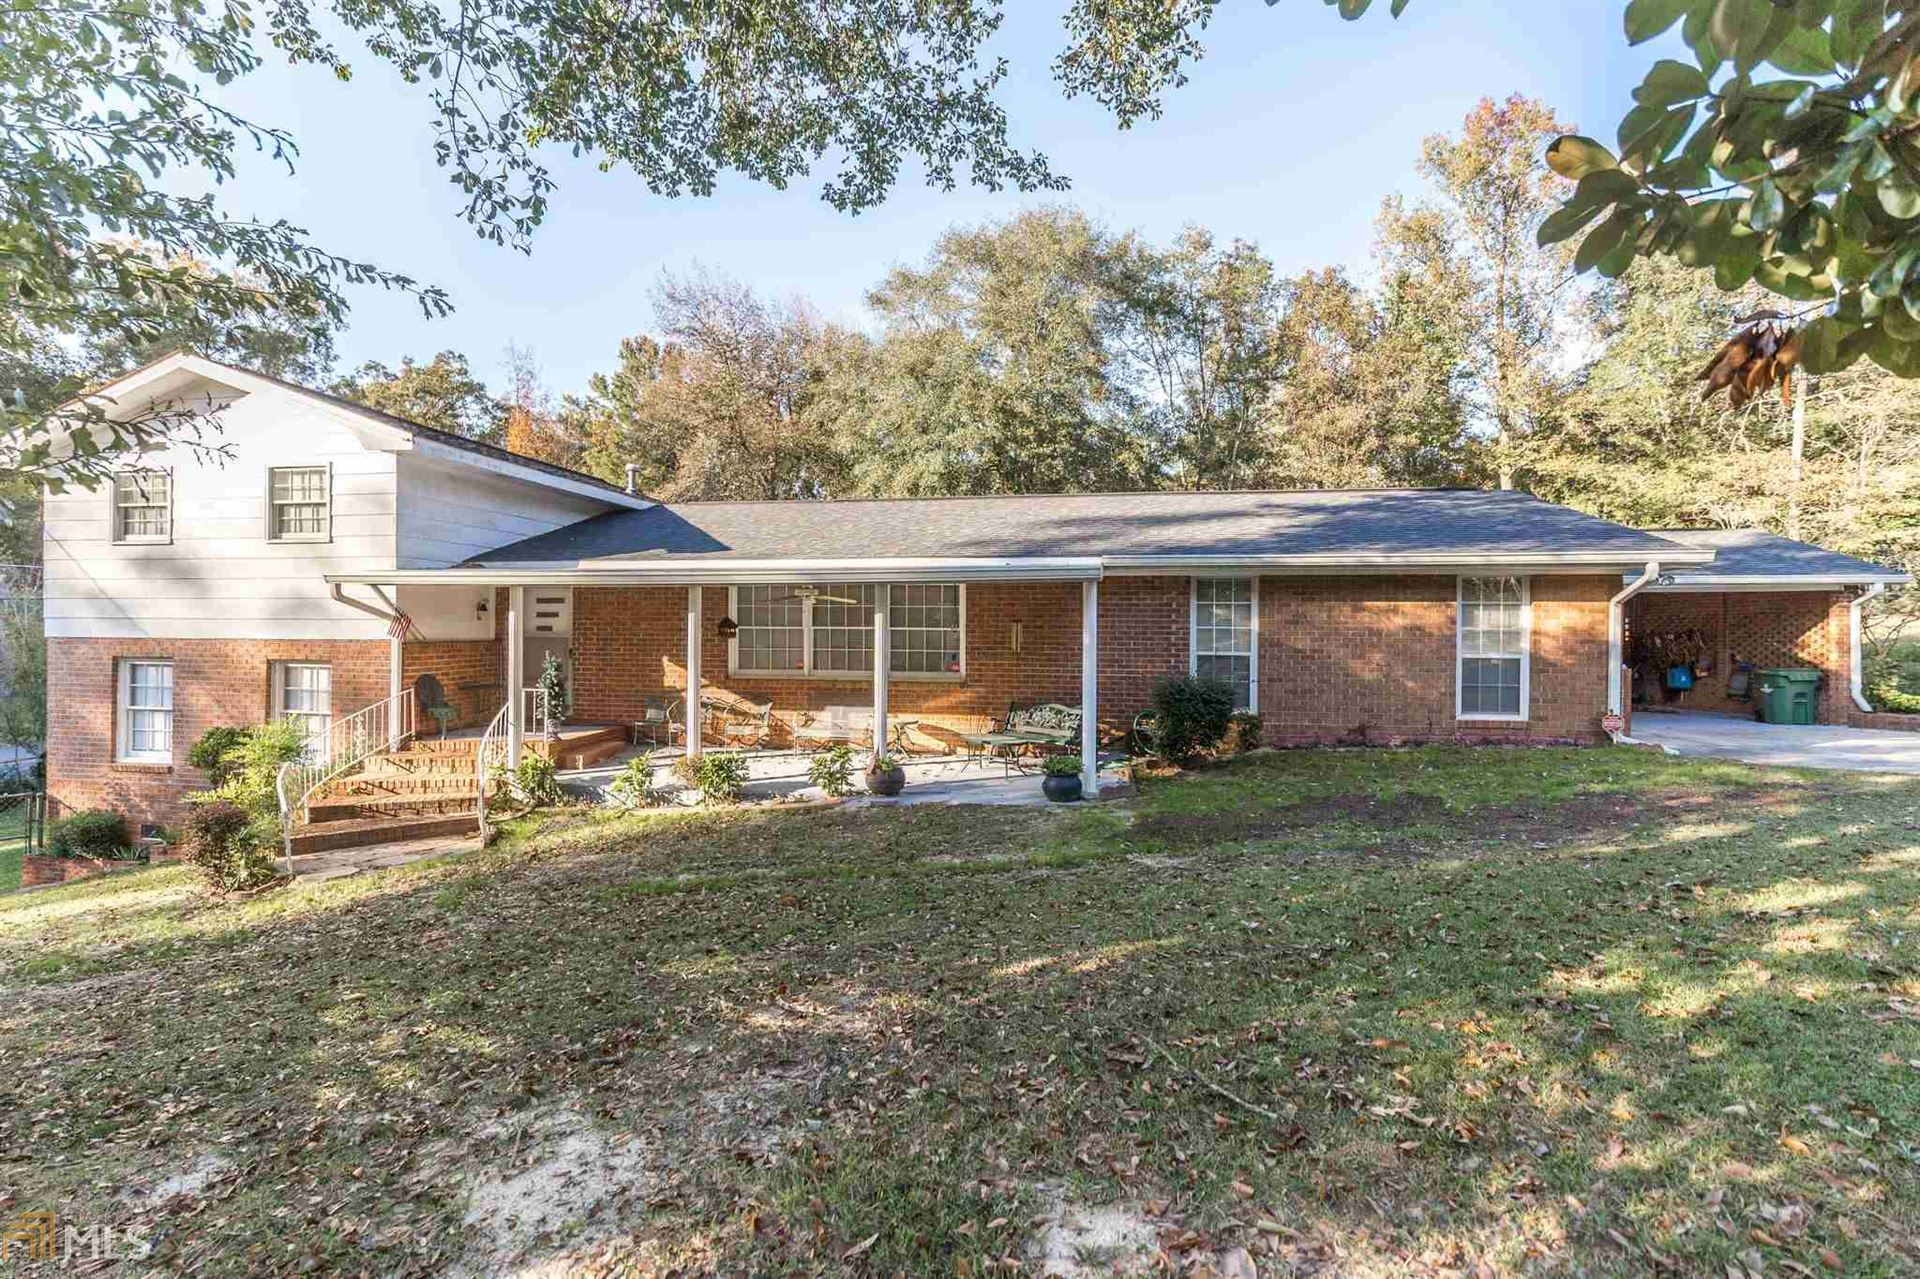 207 Stanford St, Warner Robins, GA 31093 - MLS#: 8884636